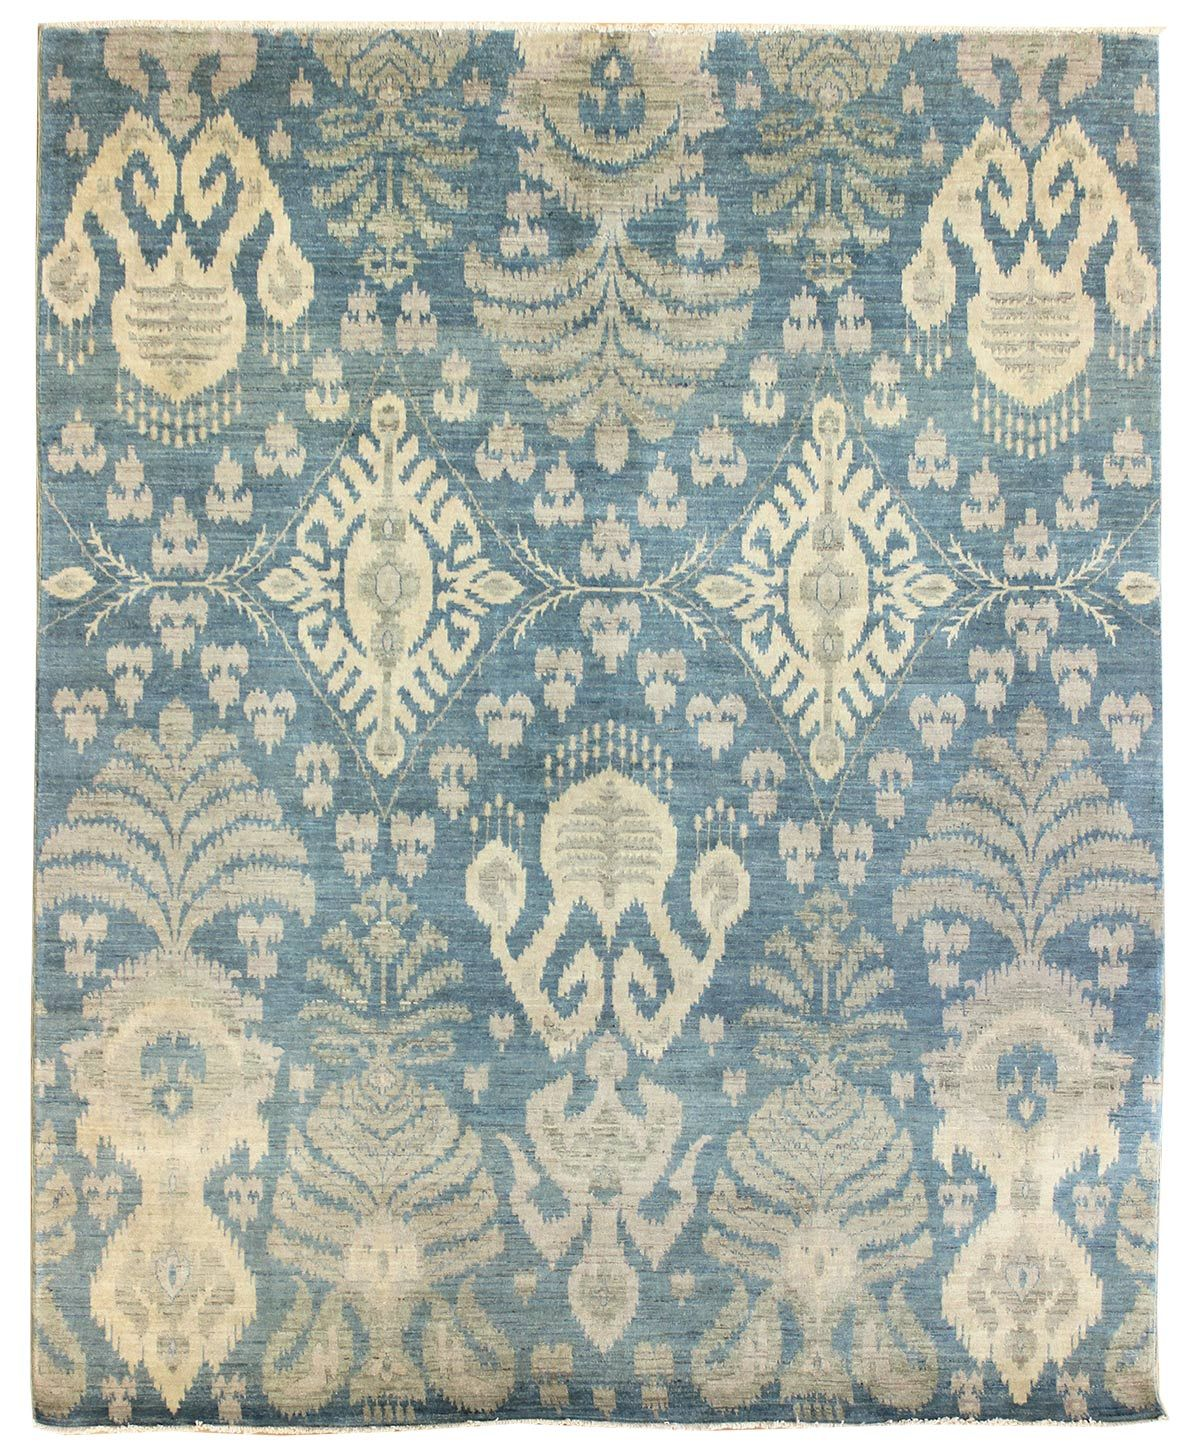 Ikat Design Rug Hand Knotted In